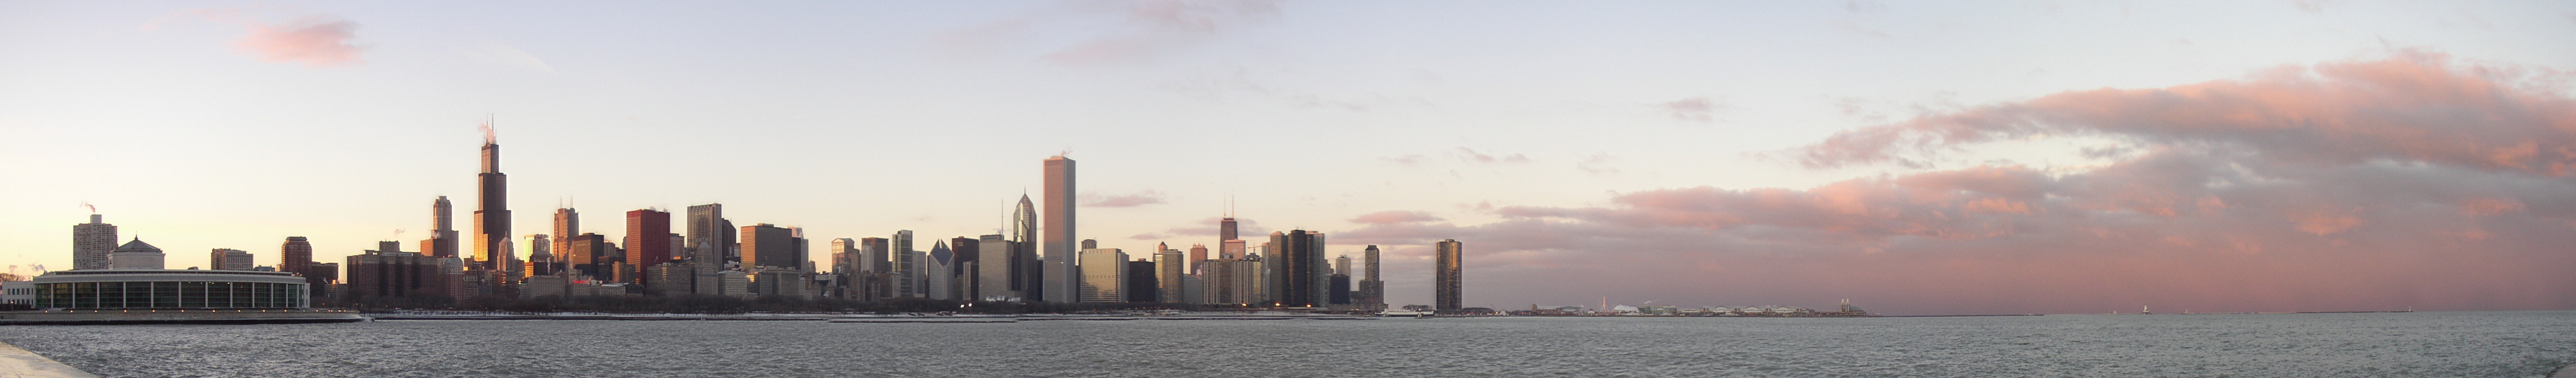 File:Chicago Skyline at Sunset.png.